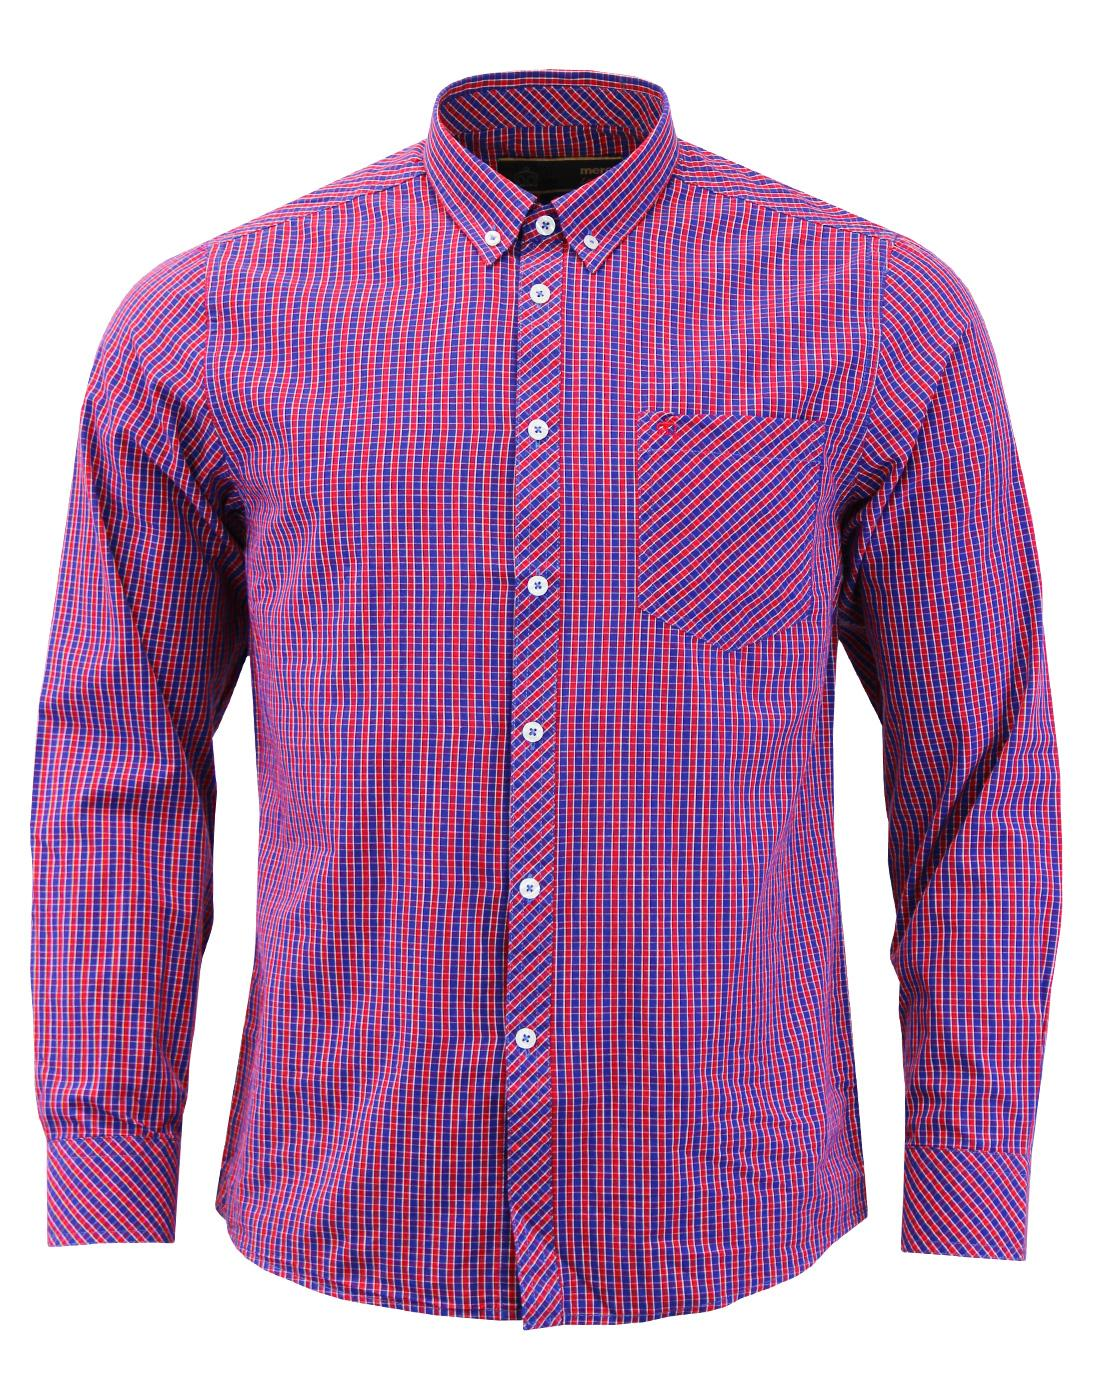 Reigate MERC 60s Mod Small Check Button Down Shirt